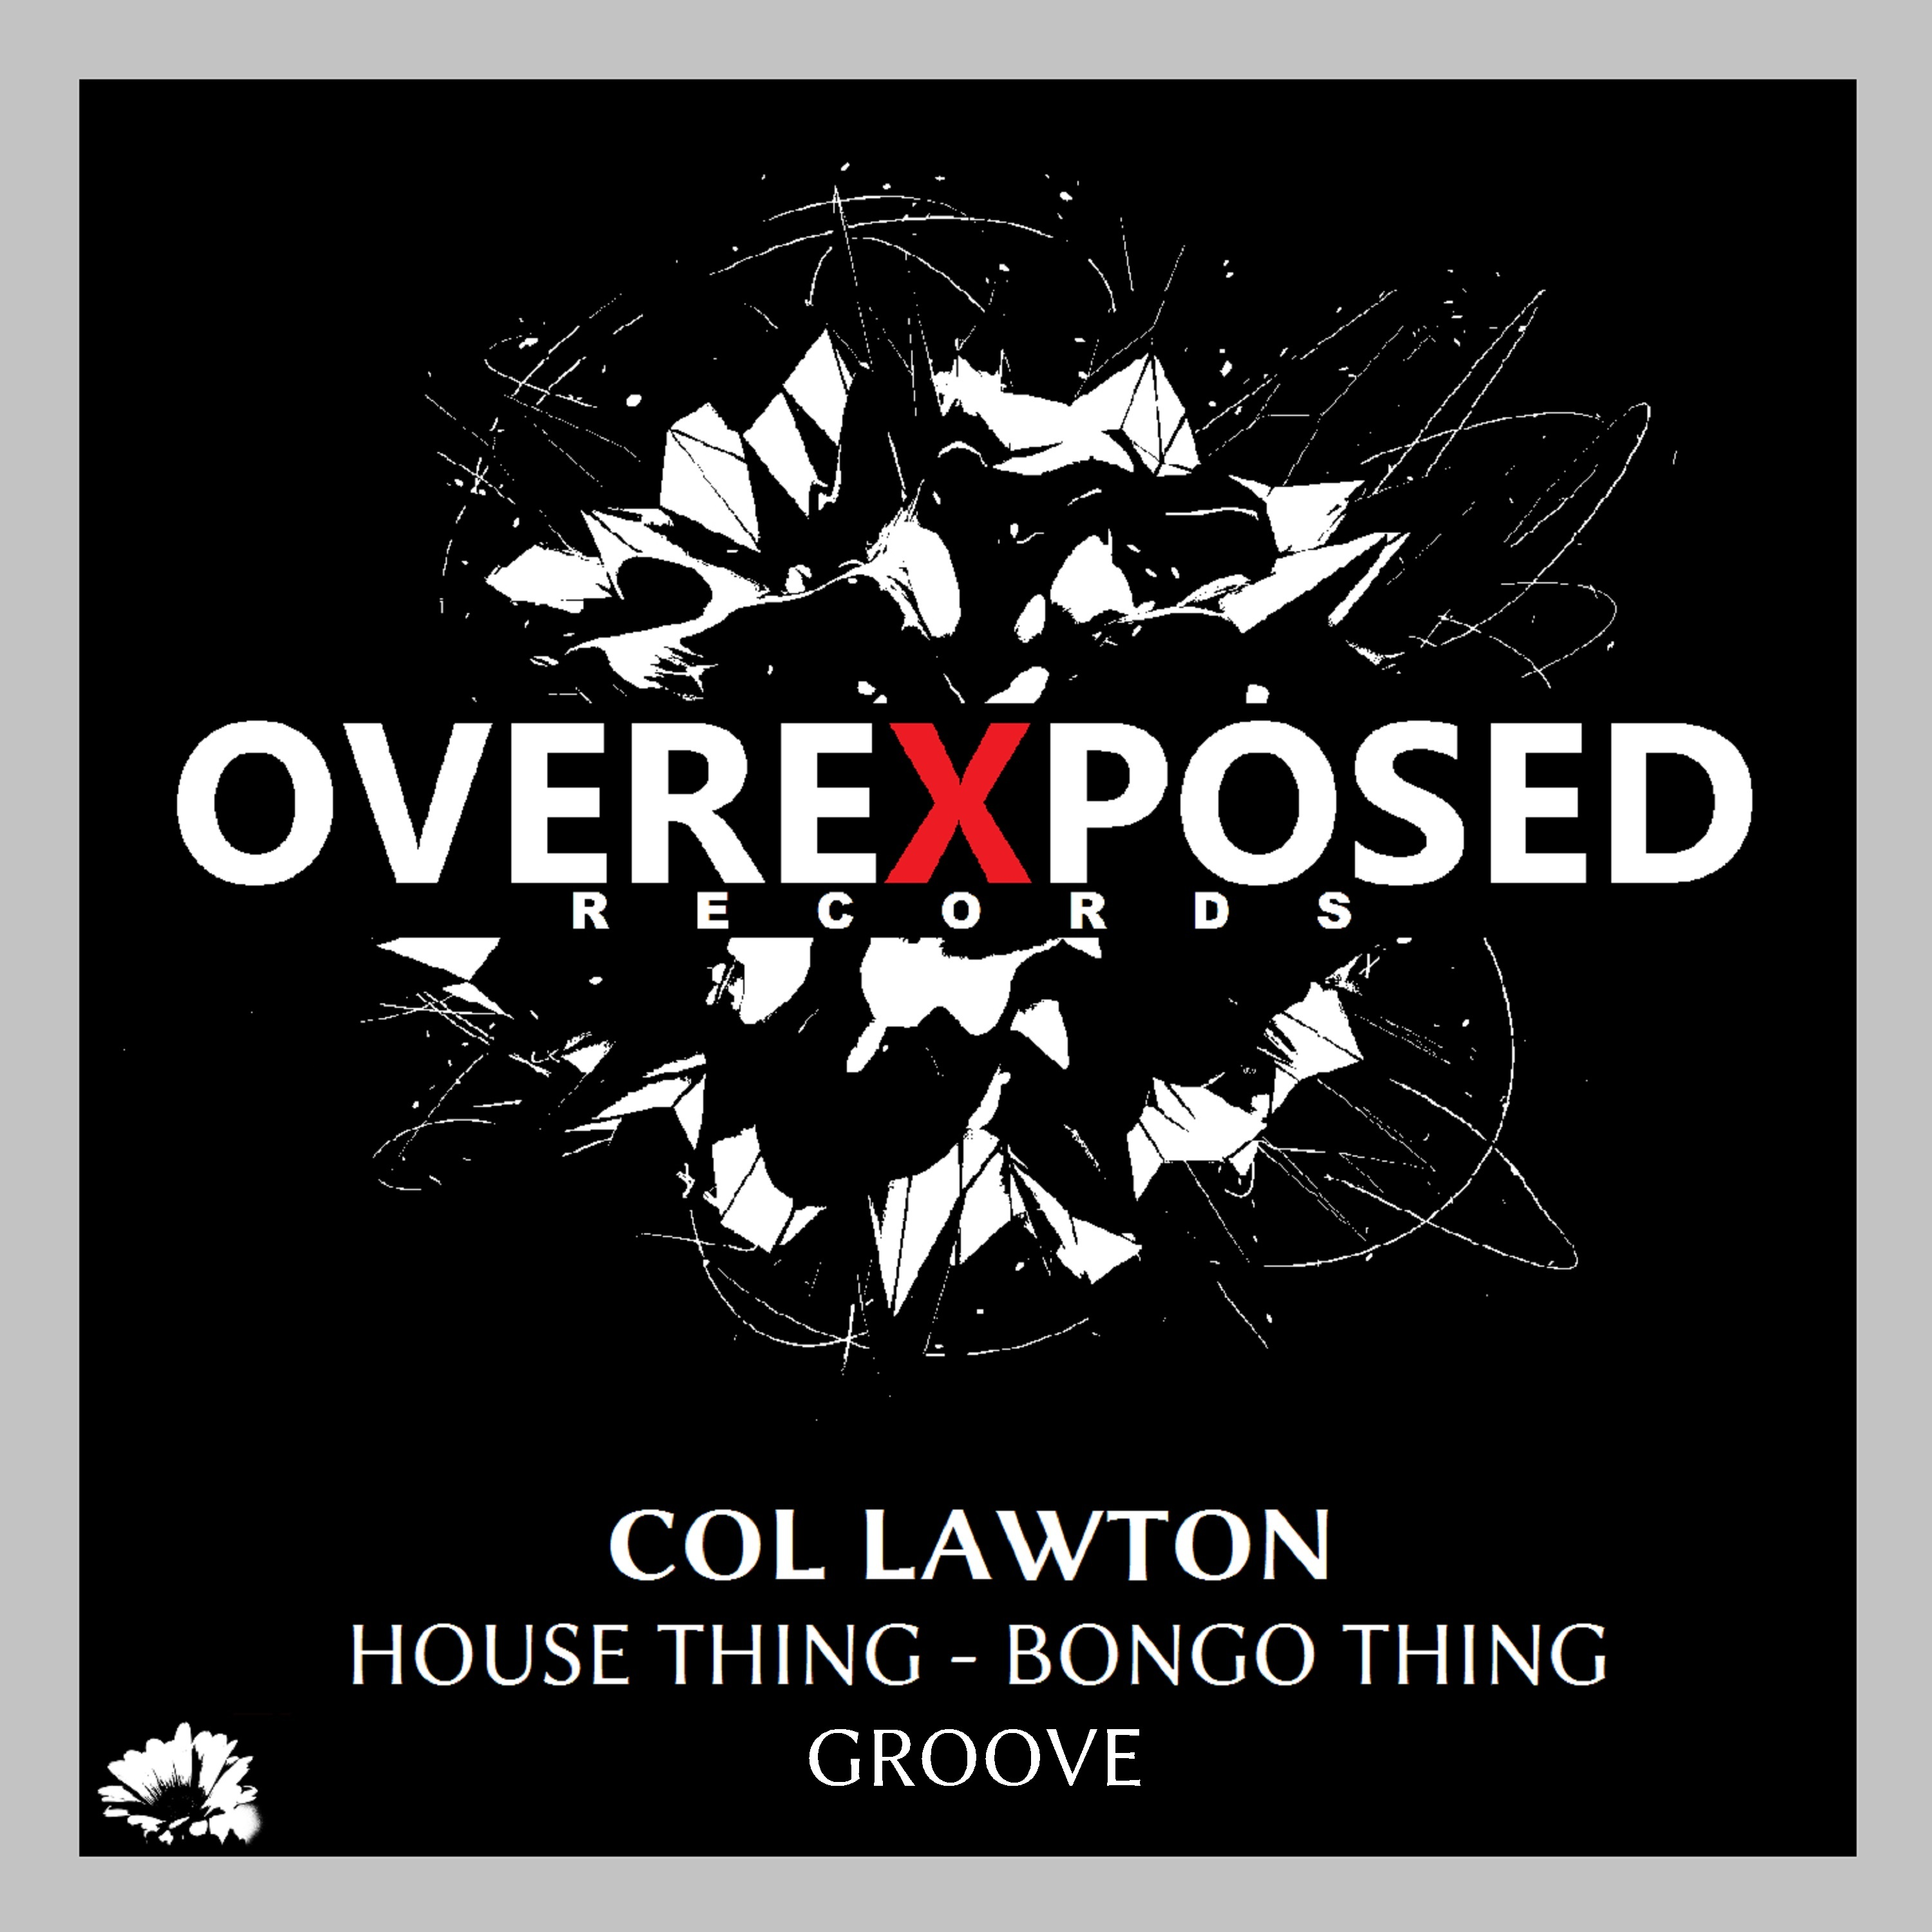 Col Lawton - Groove (Original mix)